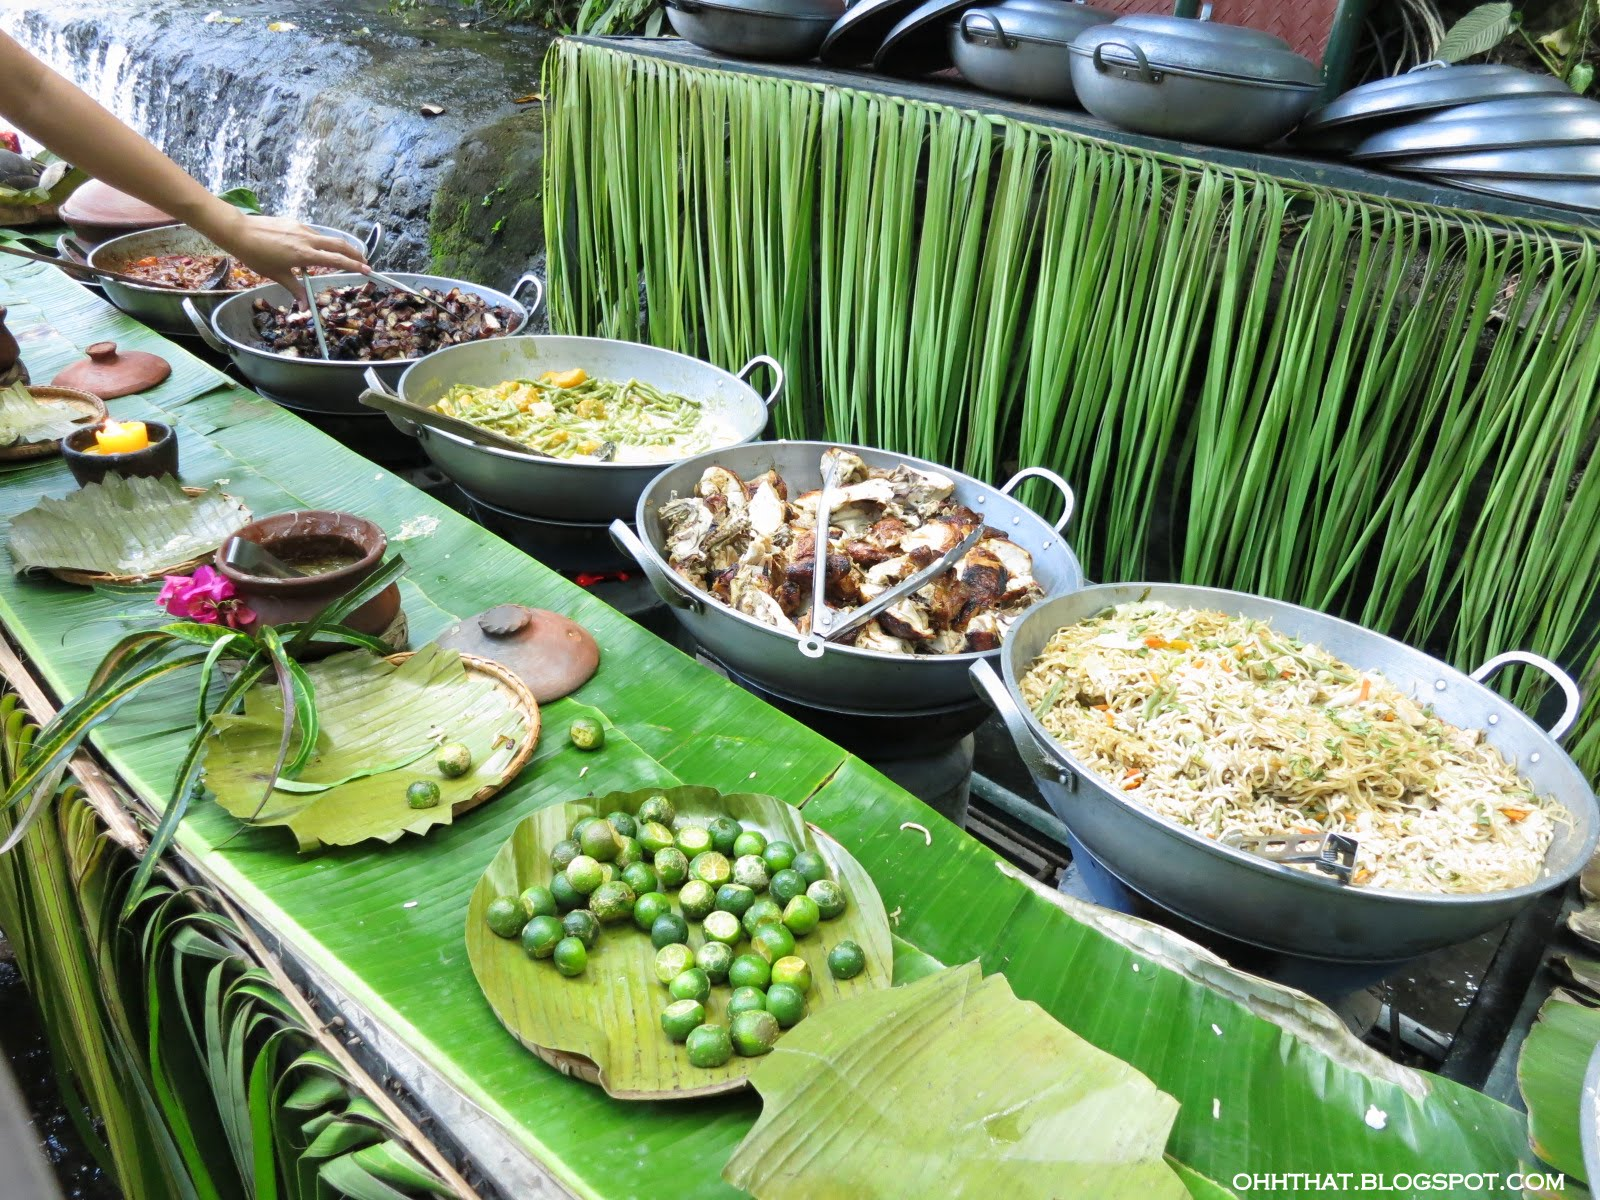 Ohhthat By Tin Buffet By The Waterfalls At Villa Escudero